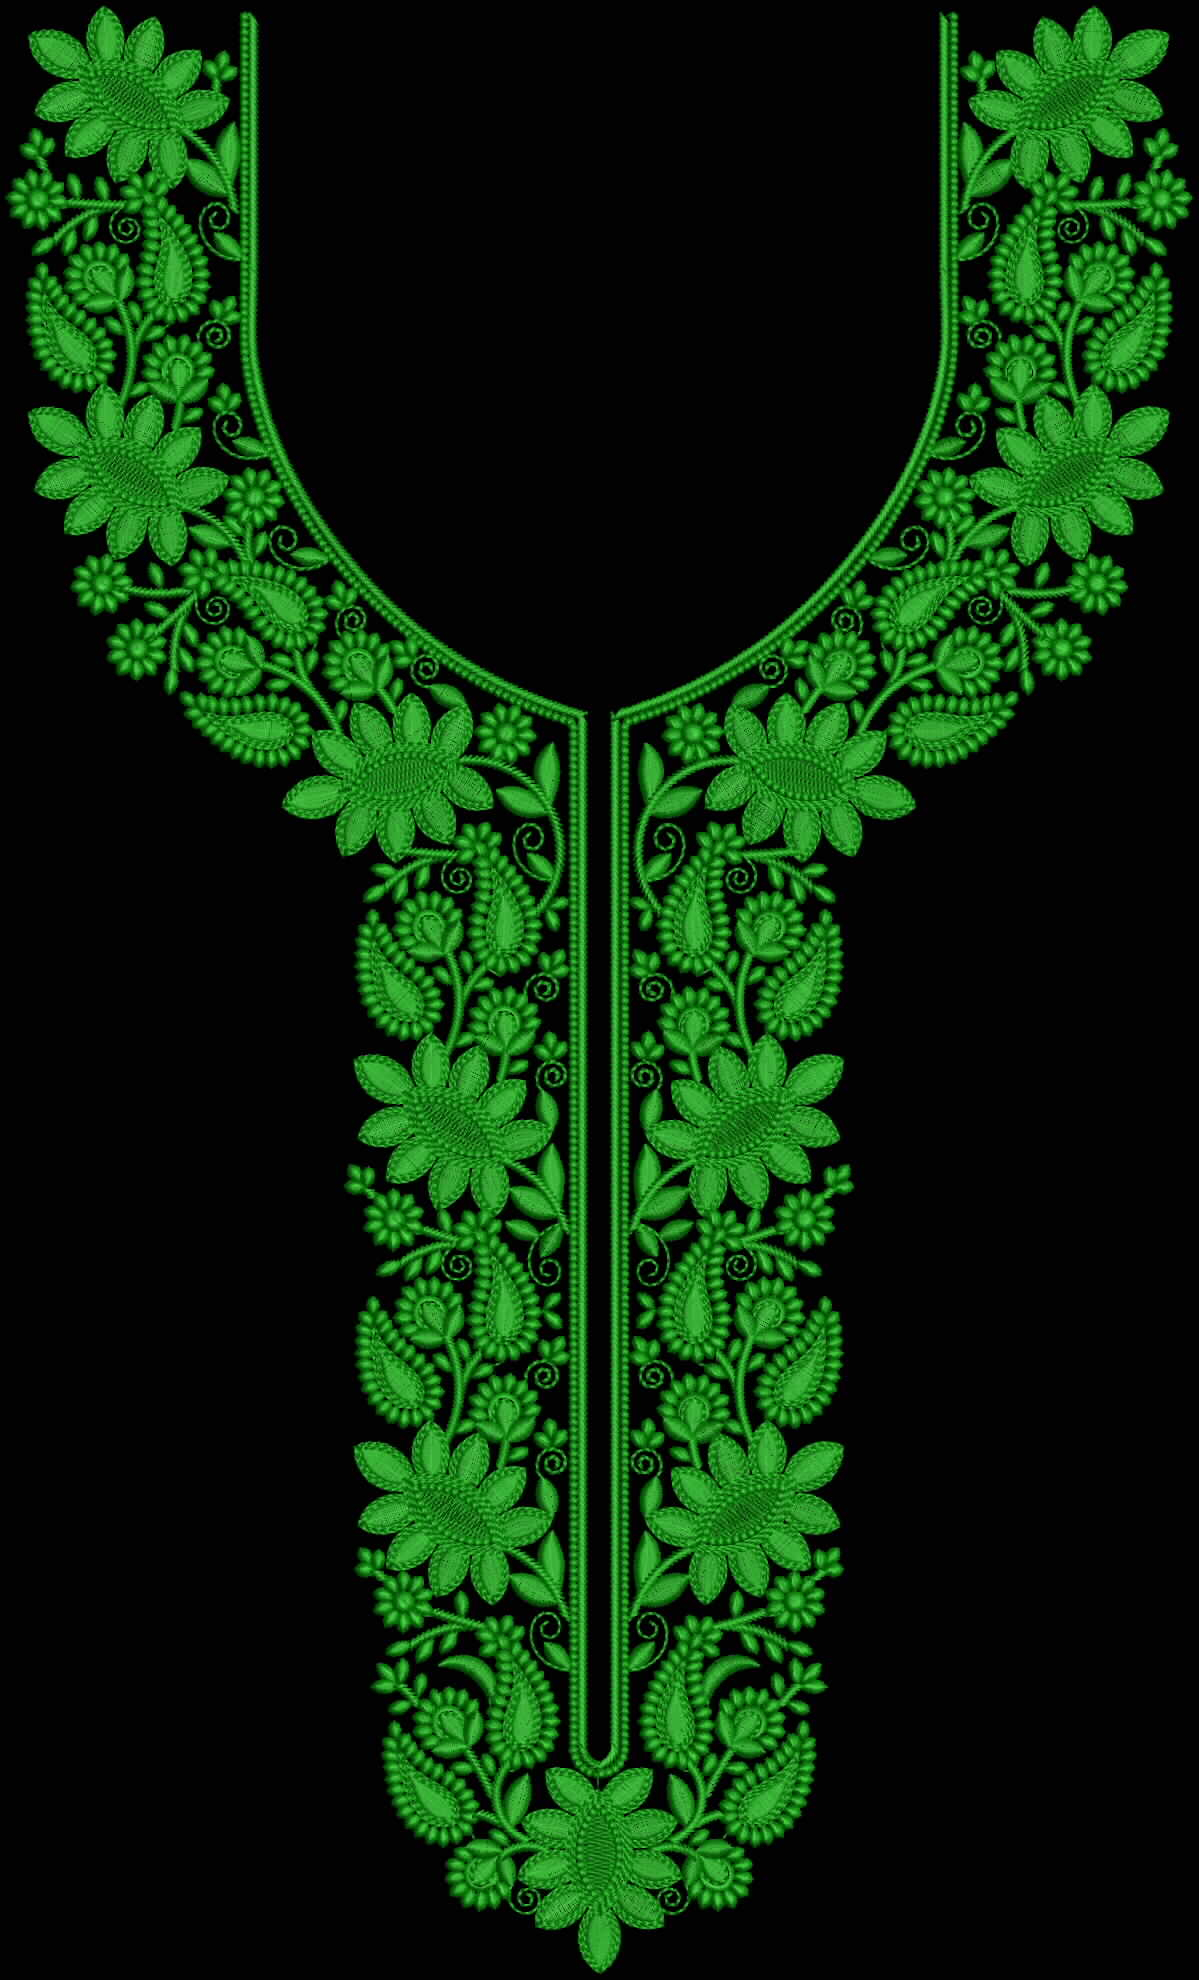 How To Design Embroidery Patterns For Machine Neck Embroidery Design For Use On Salwar Suite Dress And Kurta